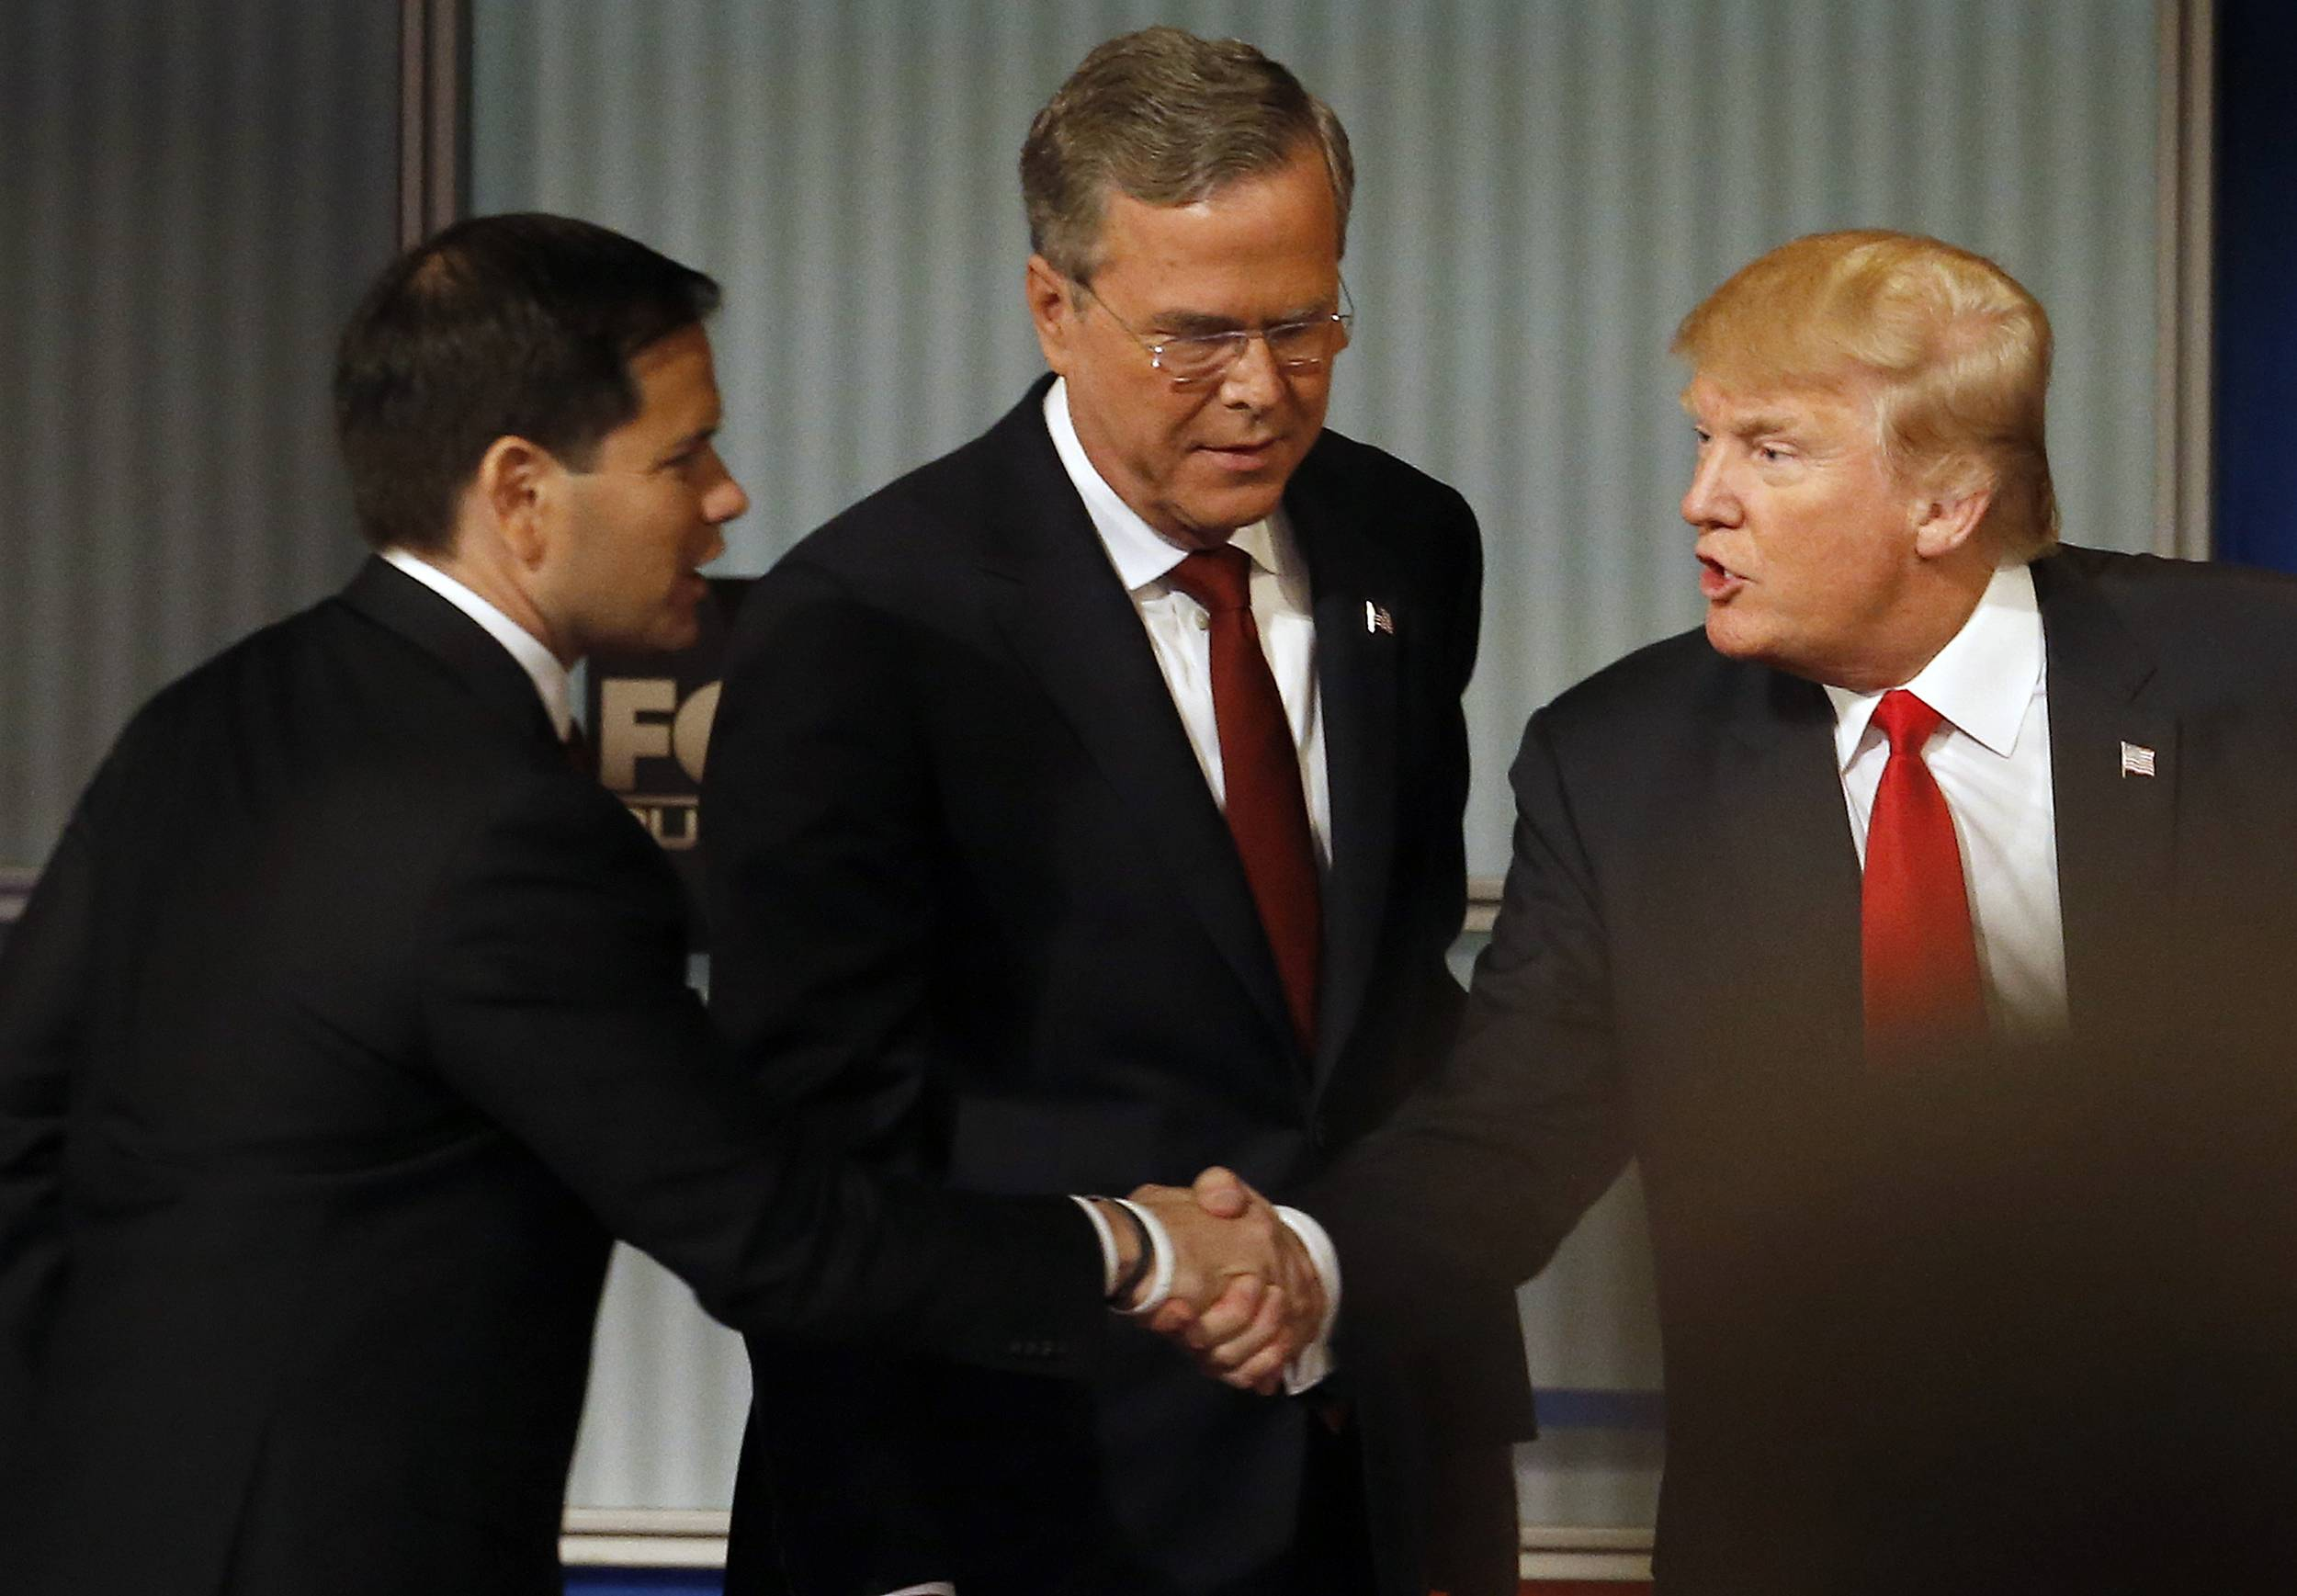 Marco Rubio and Donald Trump shake hands as Jeb Bush looks on during Republican presidential debate at Milwaukee Theatre, Tuesday, Nov. 10, 2015, in Milwaukee.